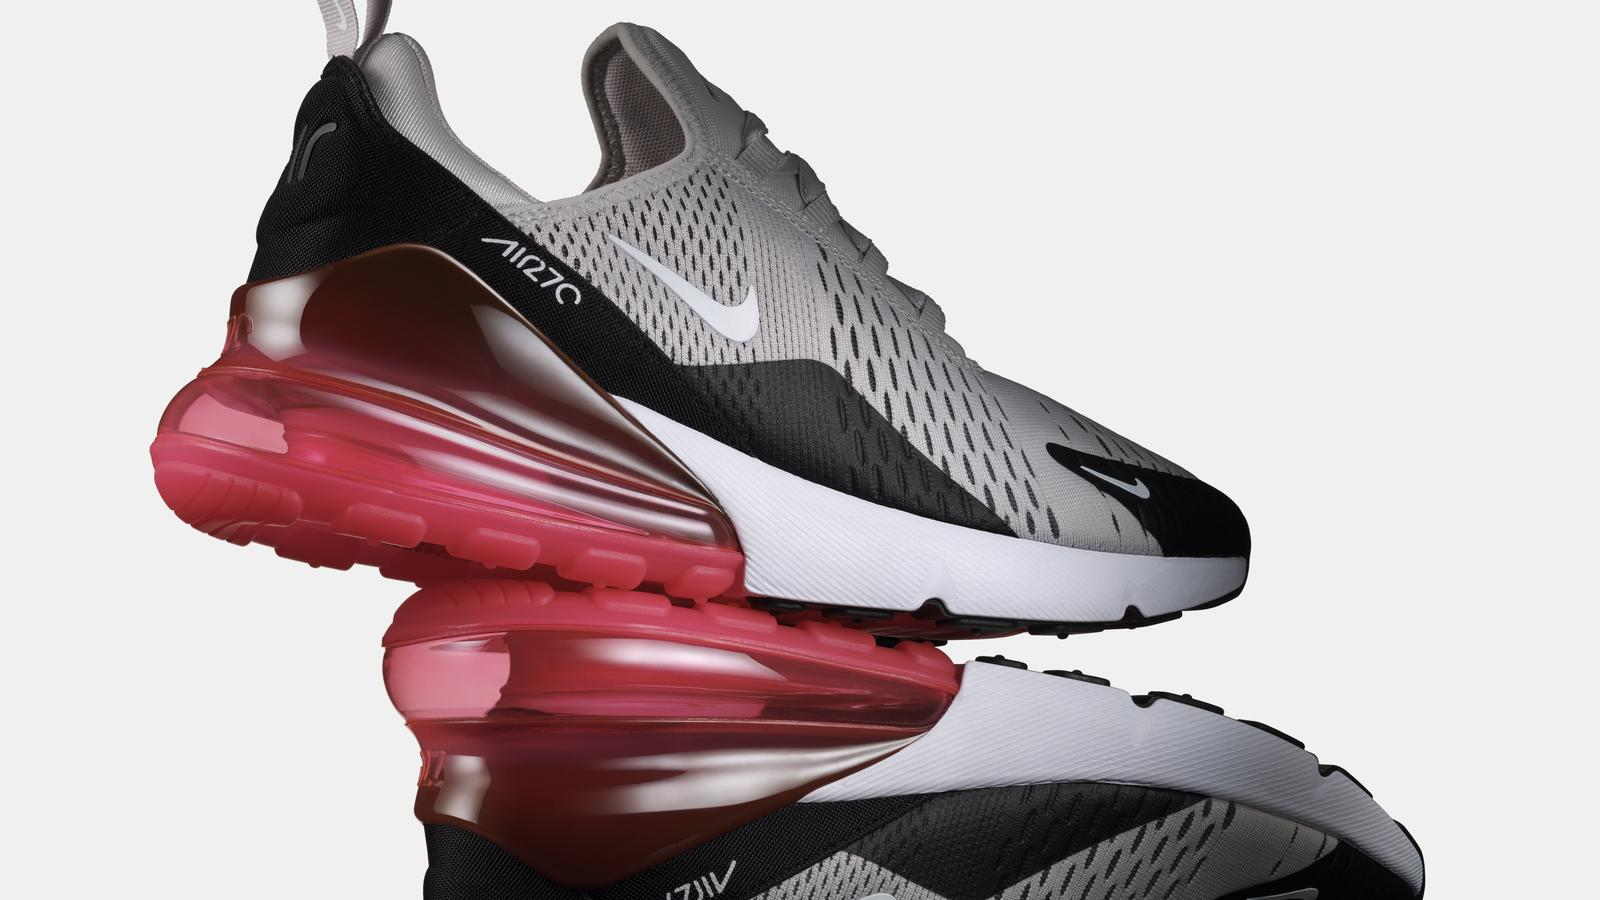 promo code 85477 232fb Nike's Air Max 270, VaporMax, and Epic React are boosting ...